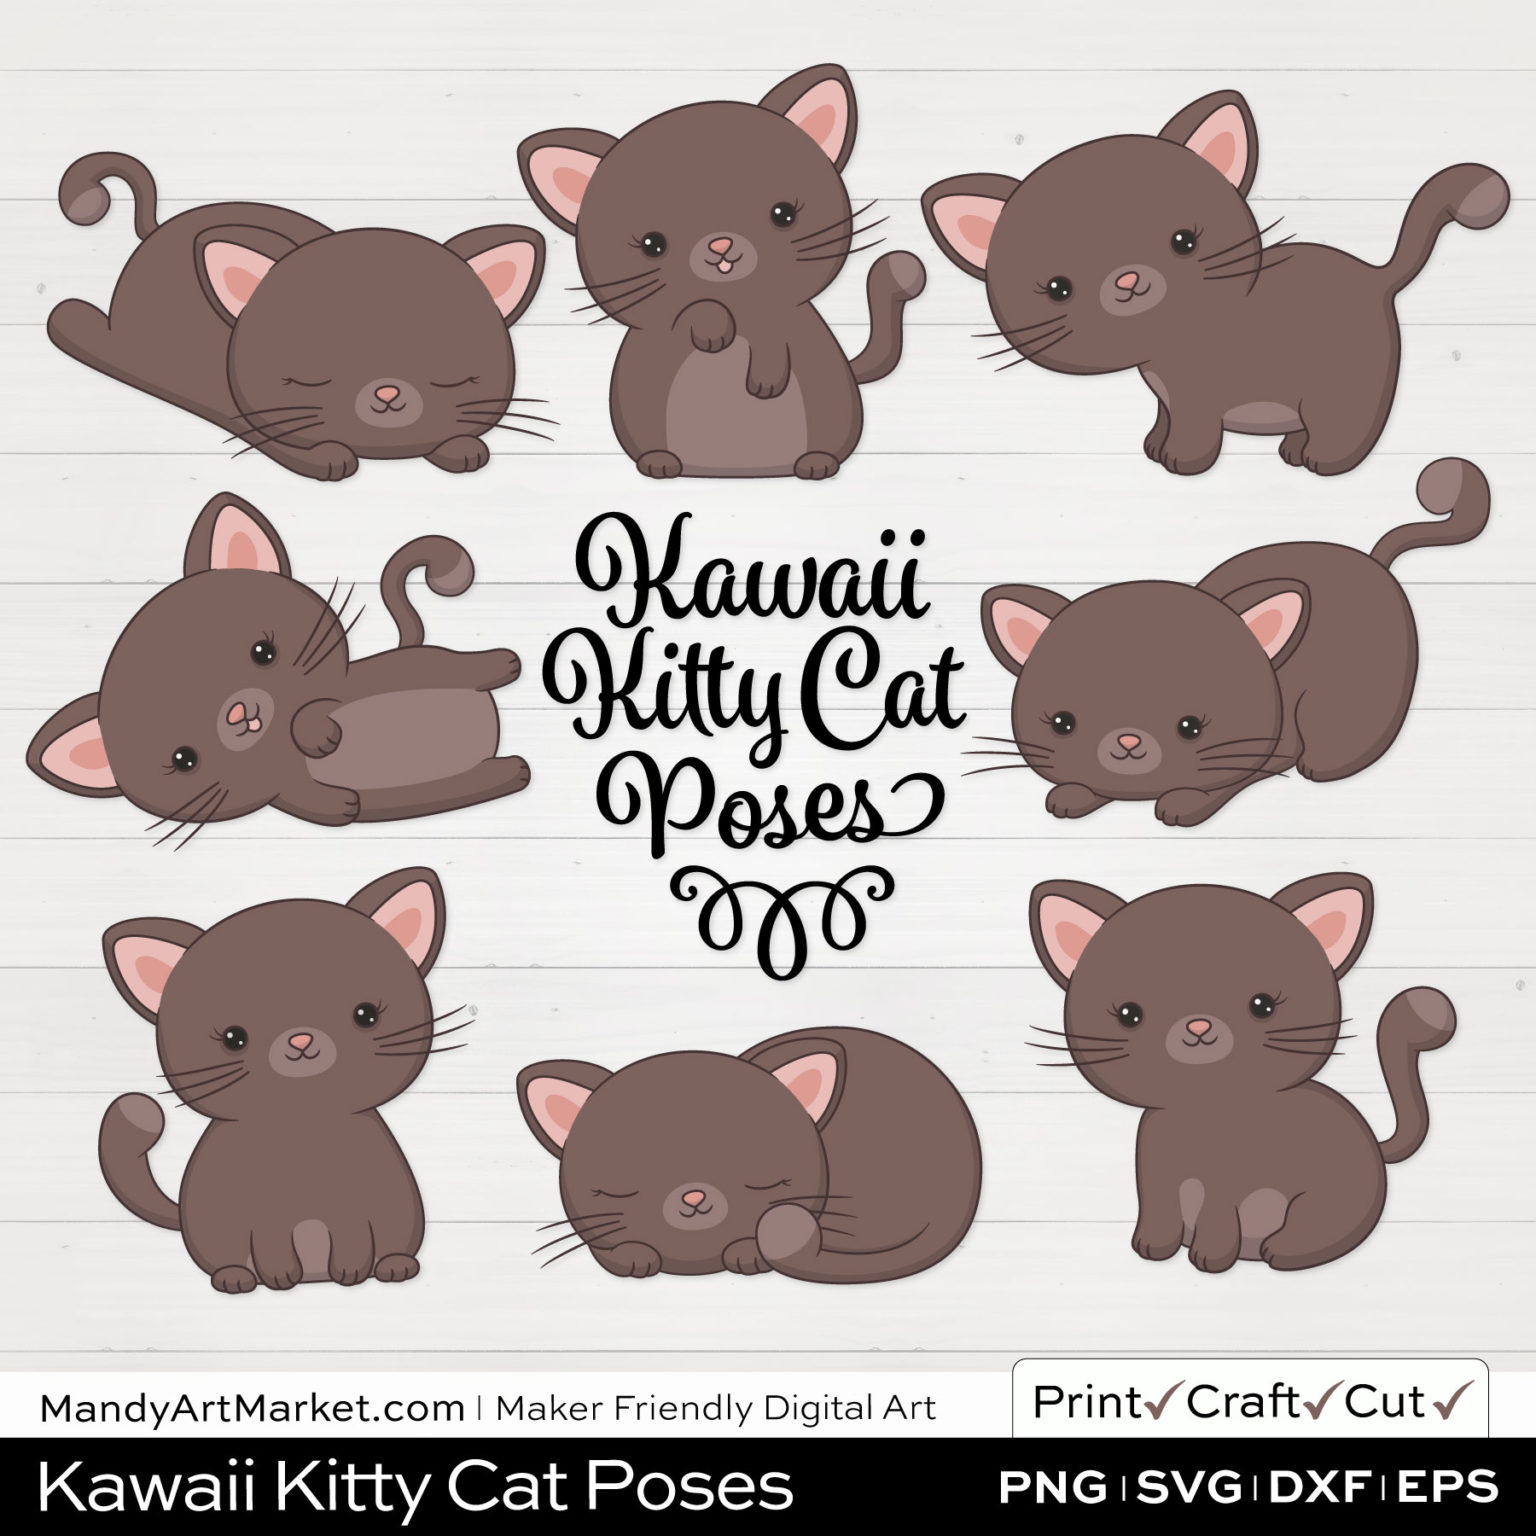 Cedar Brown Kawaii Kitty Cat Poses Clipart on White Background